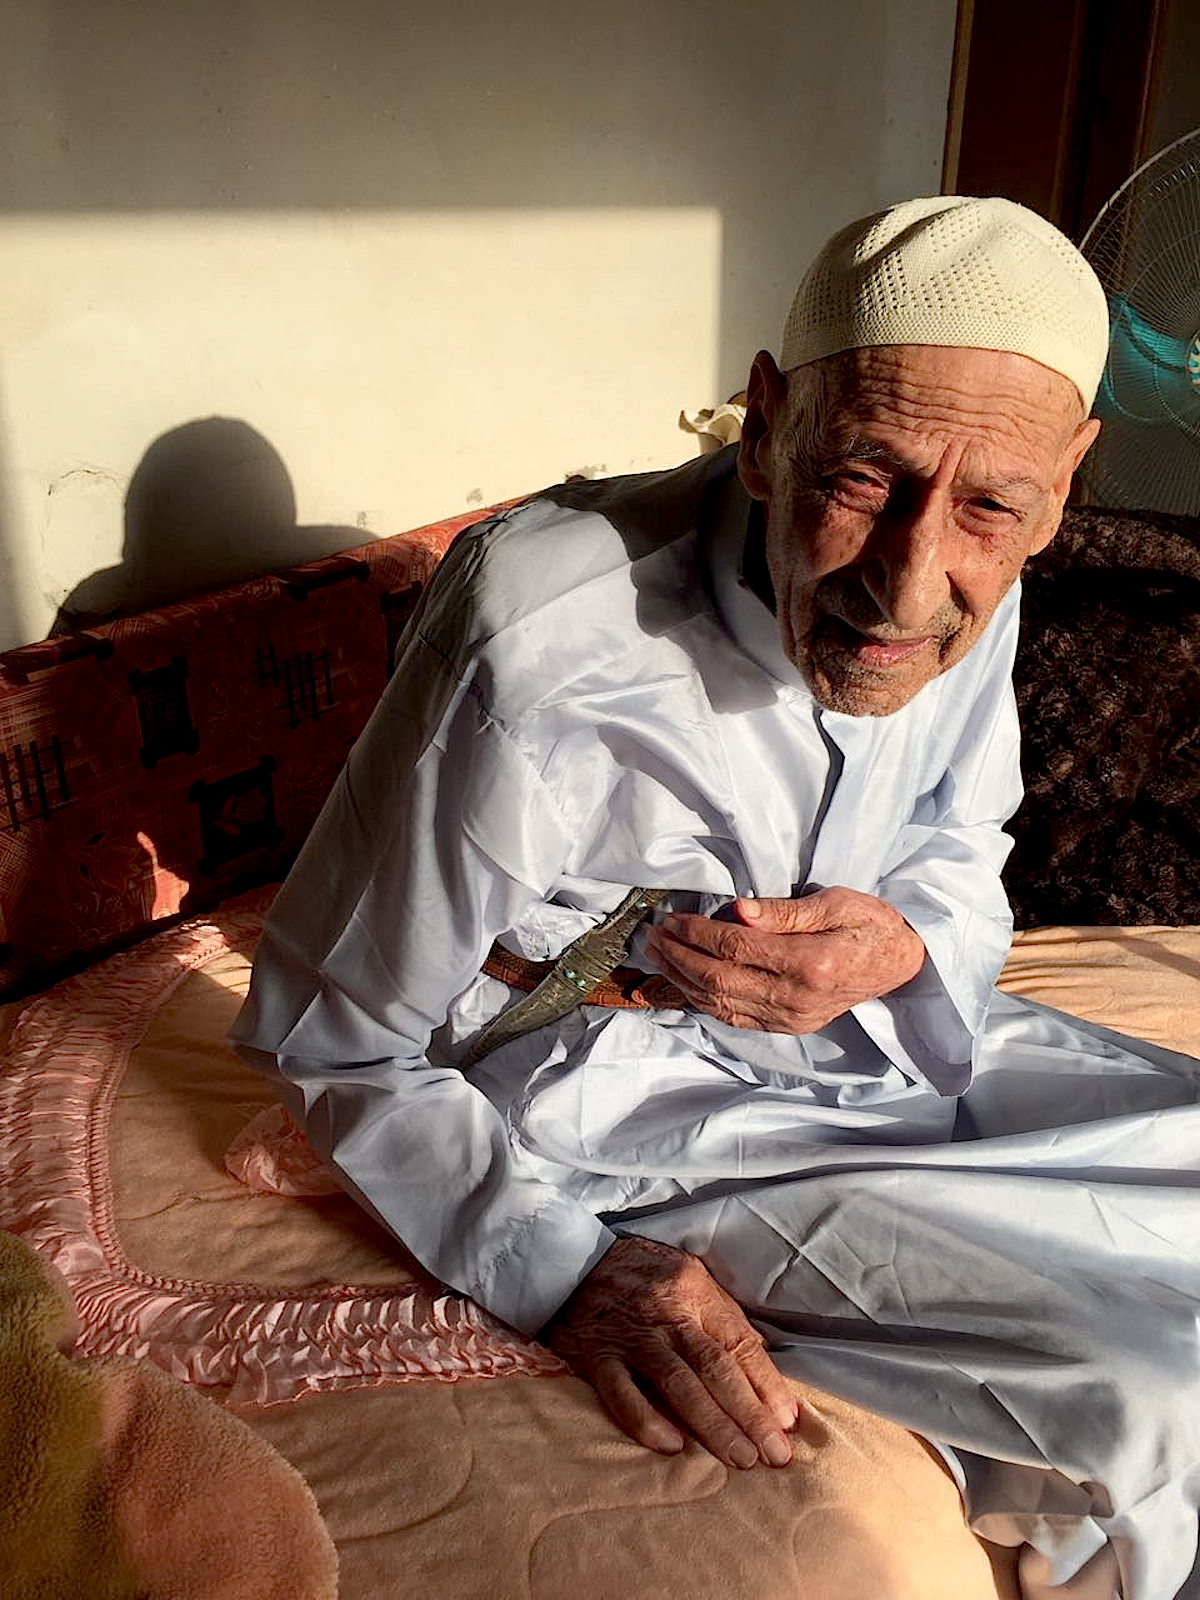 Musa Hussein Abu Al Qian was present in 1956 when Israeli minorities officer Haim Tzuri showed the Abu Al Qian tribe the lands Israel was promising them in return for the lands they had been evicted from